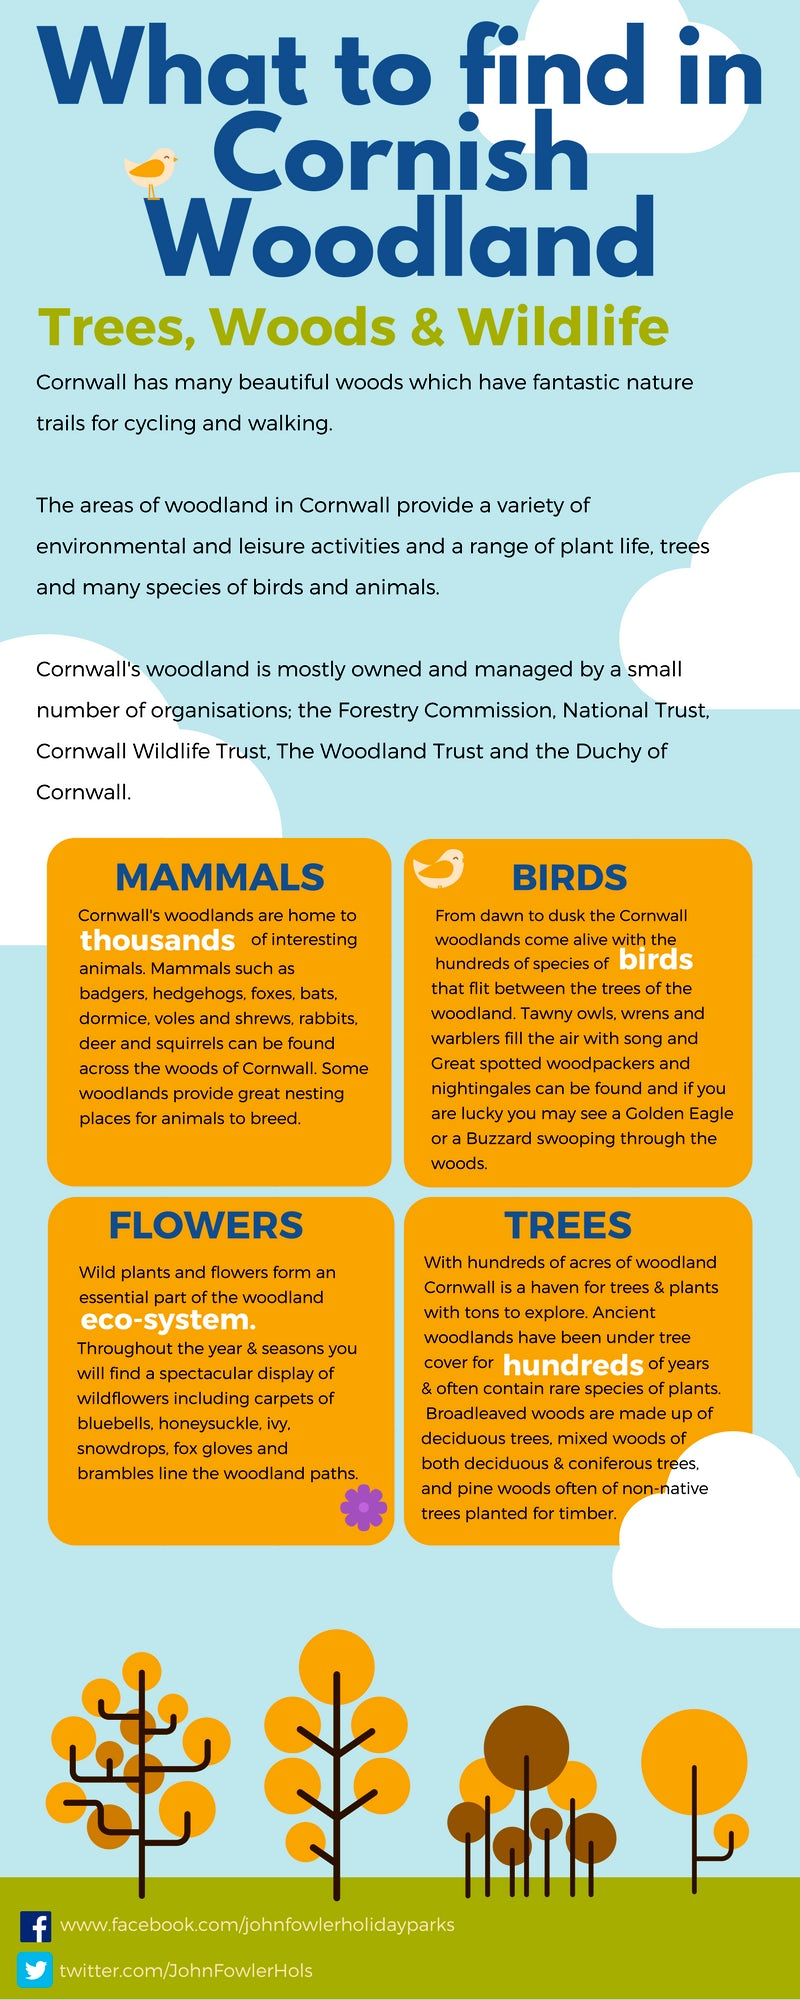 What to find in Cornish Woodland